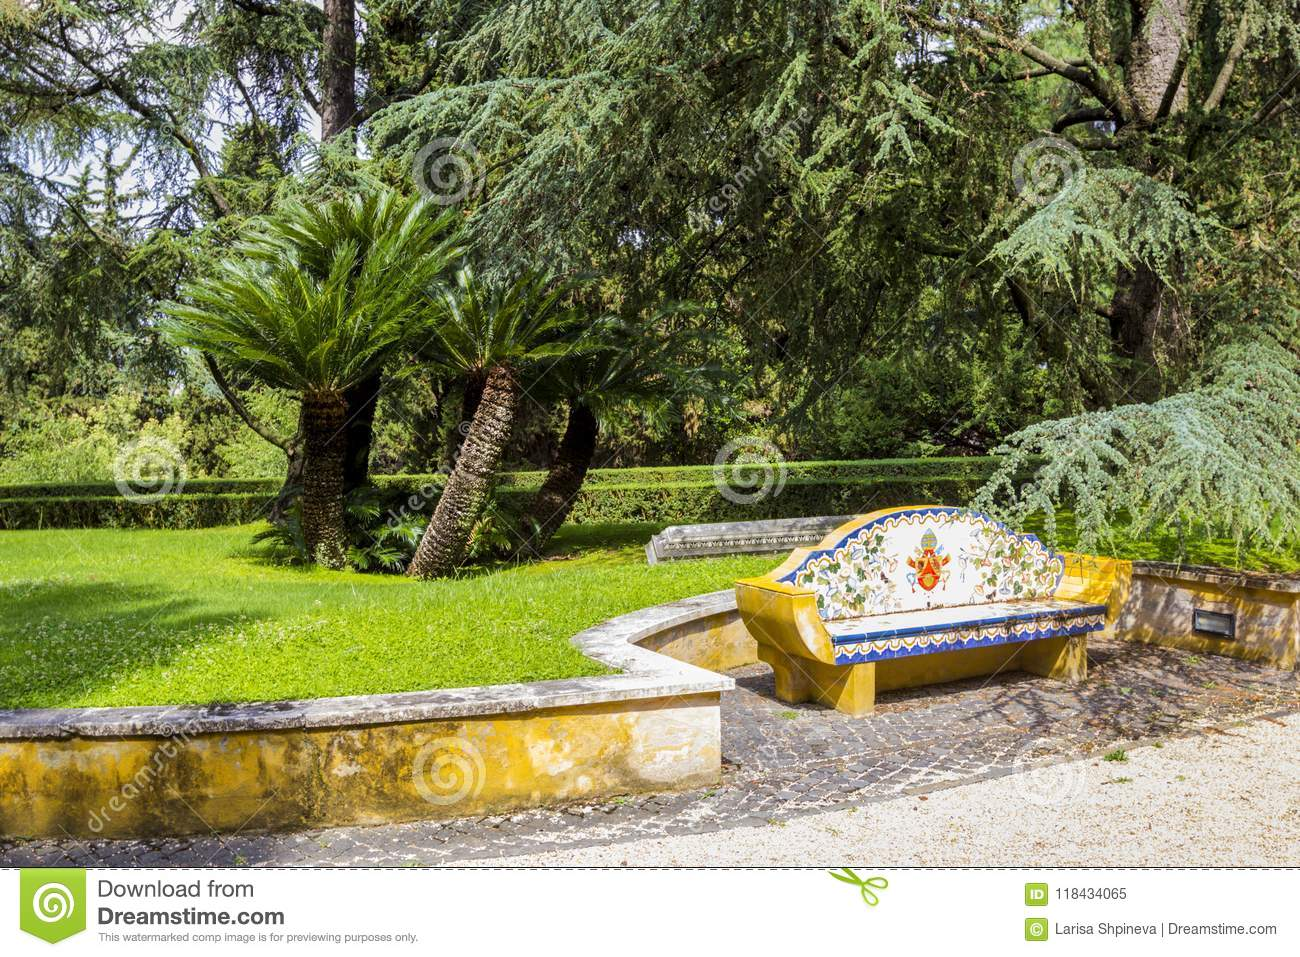 Sensational View At Vatican Gardens With Beautiful Green Lawns And Trees Ibusinesslaw Wood Chair Design Ideas Ibusinesslaworg